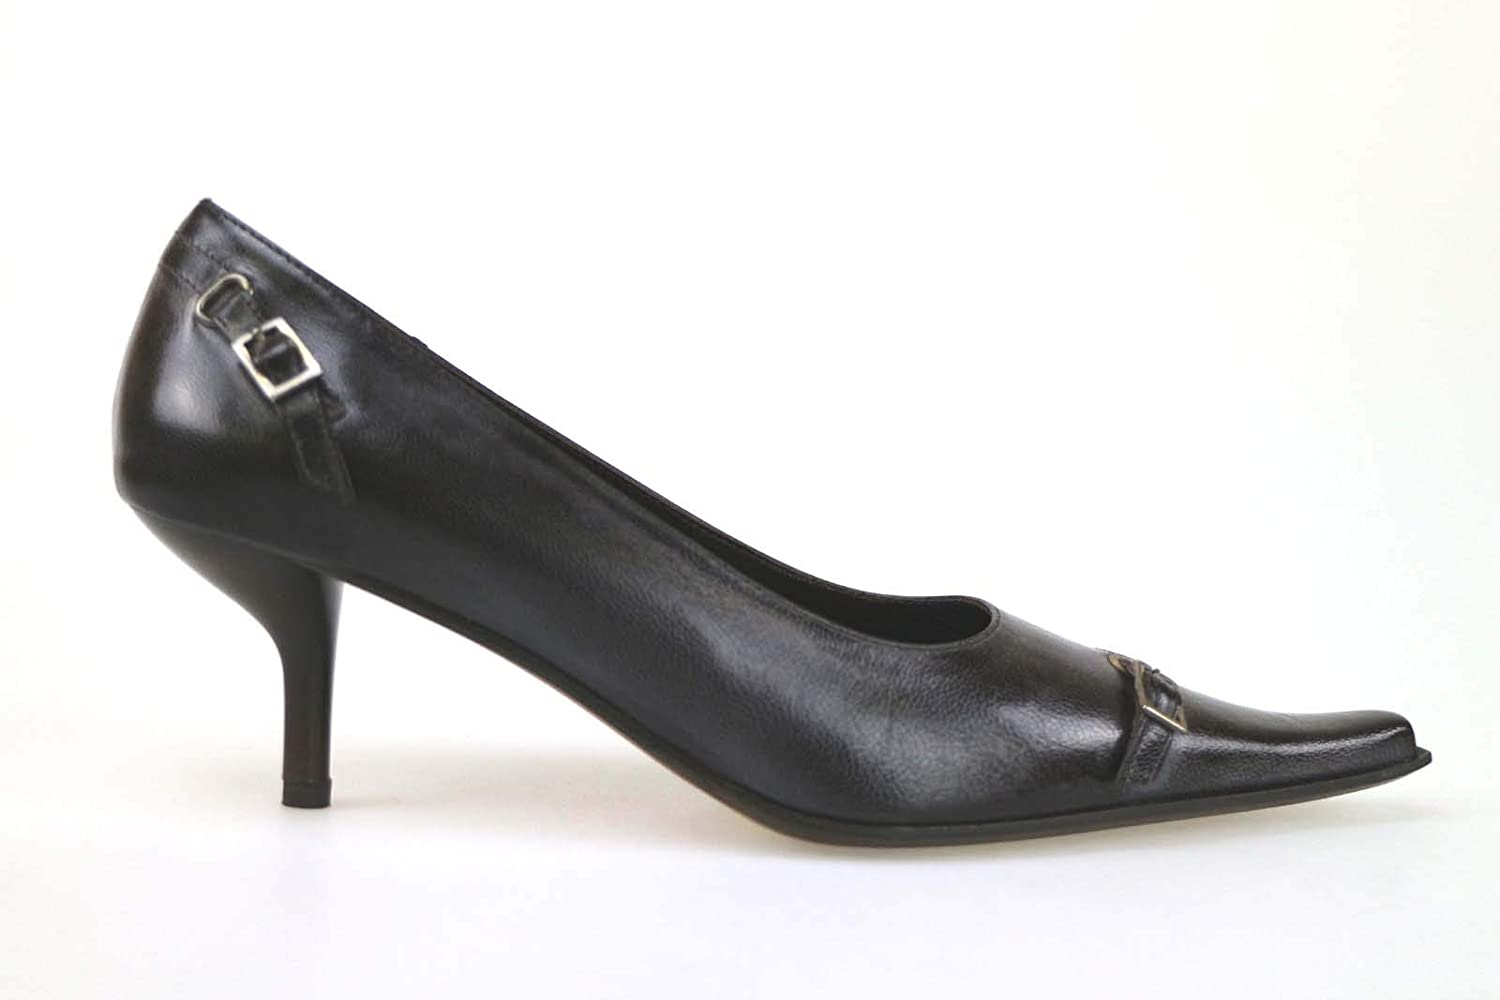 GIANNA GI Pumps-shoes Womens Leather Brown 10 US